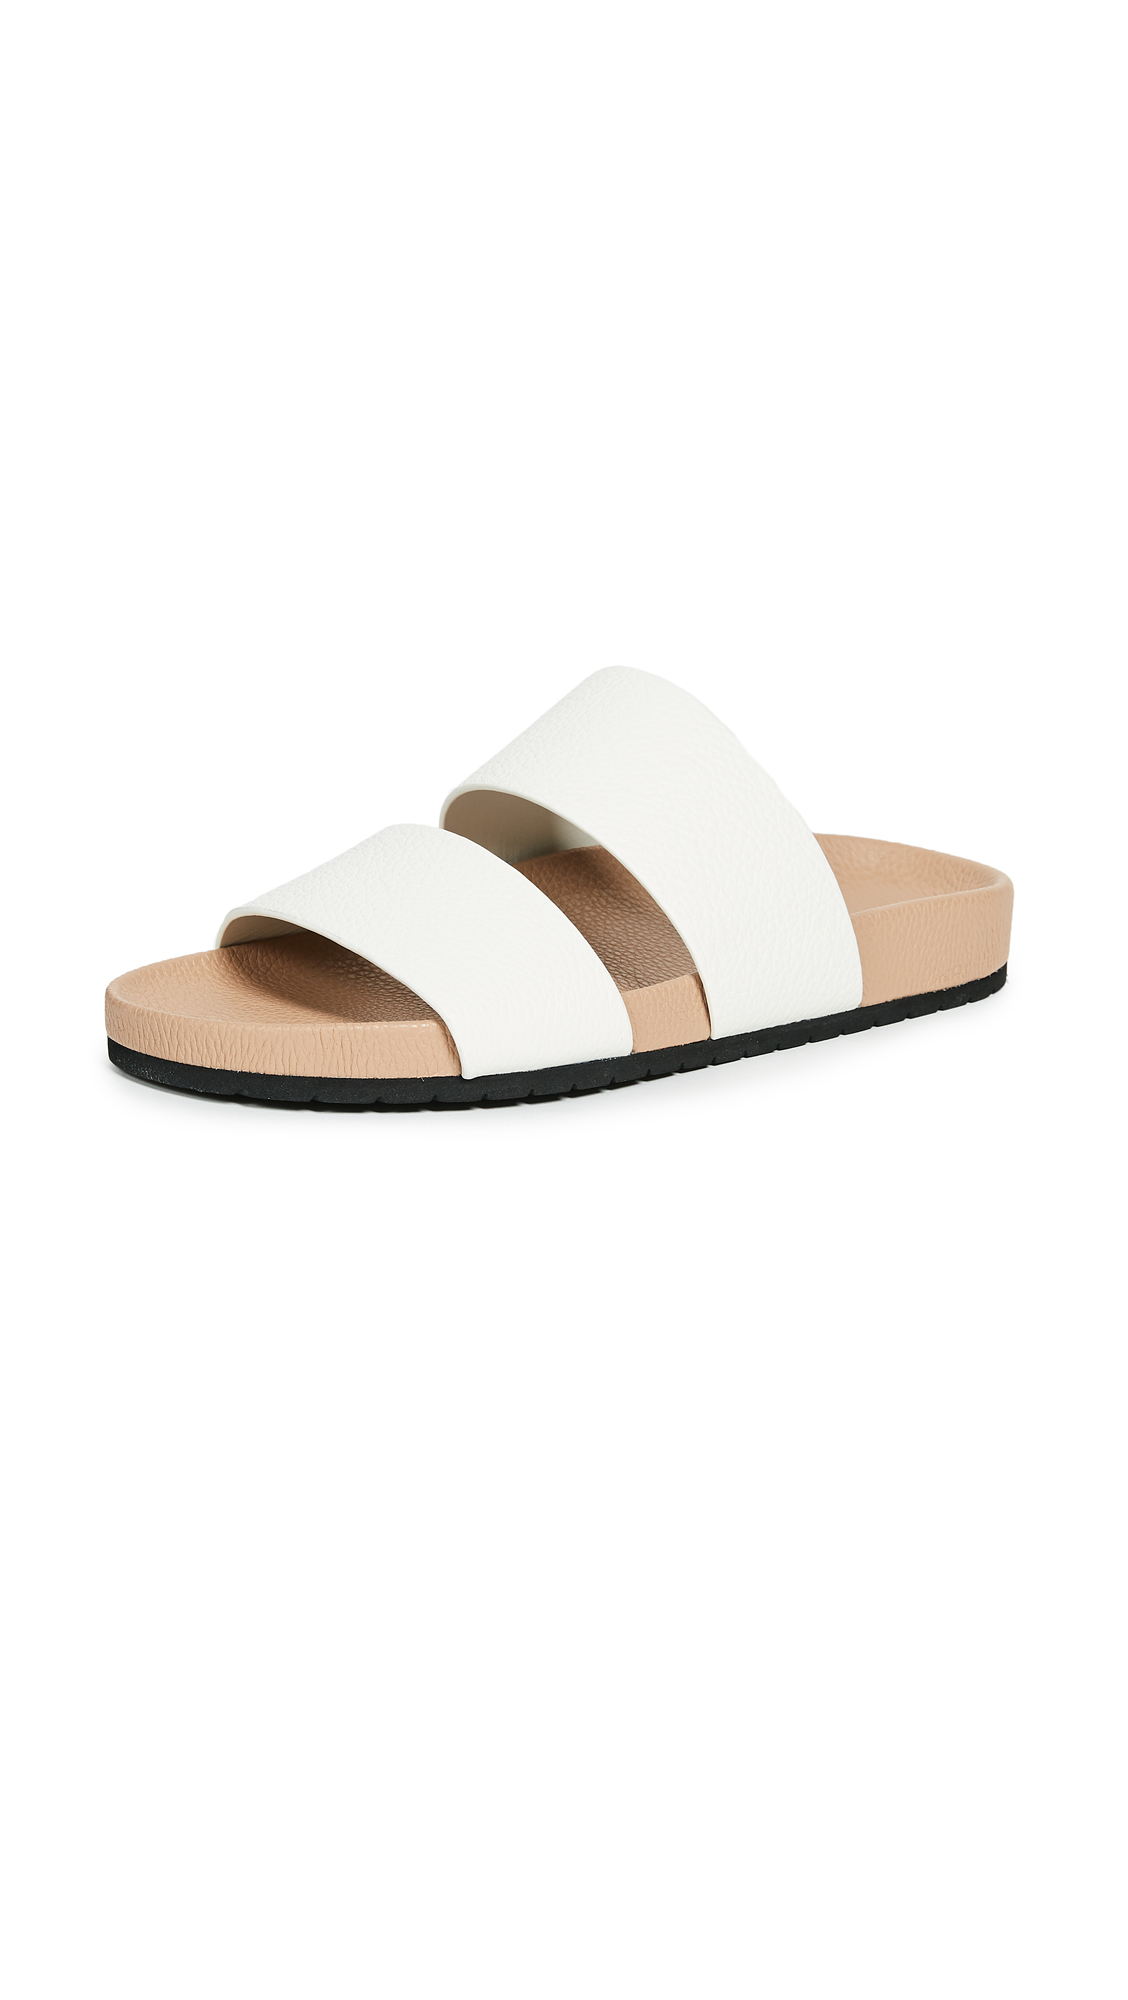 Vince Georgie Two Band Slides - White/Nude